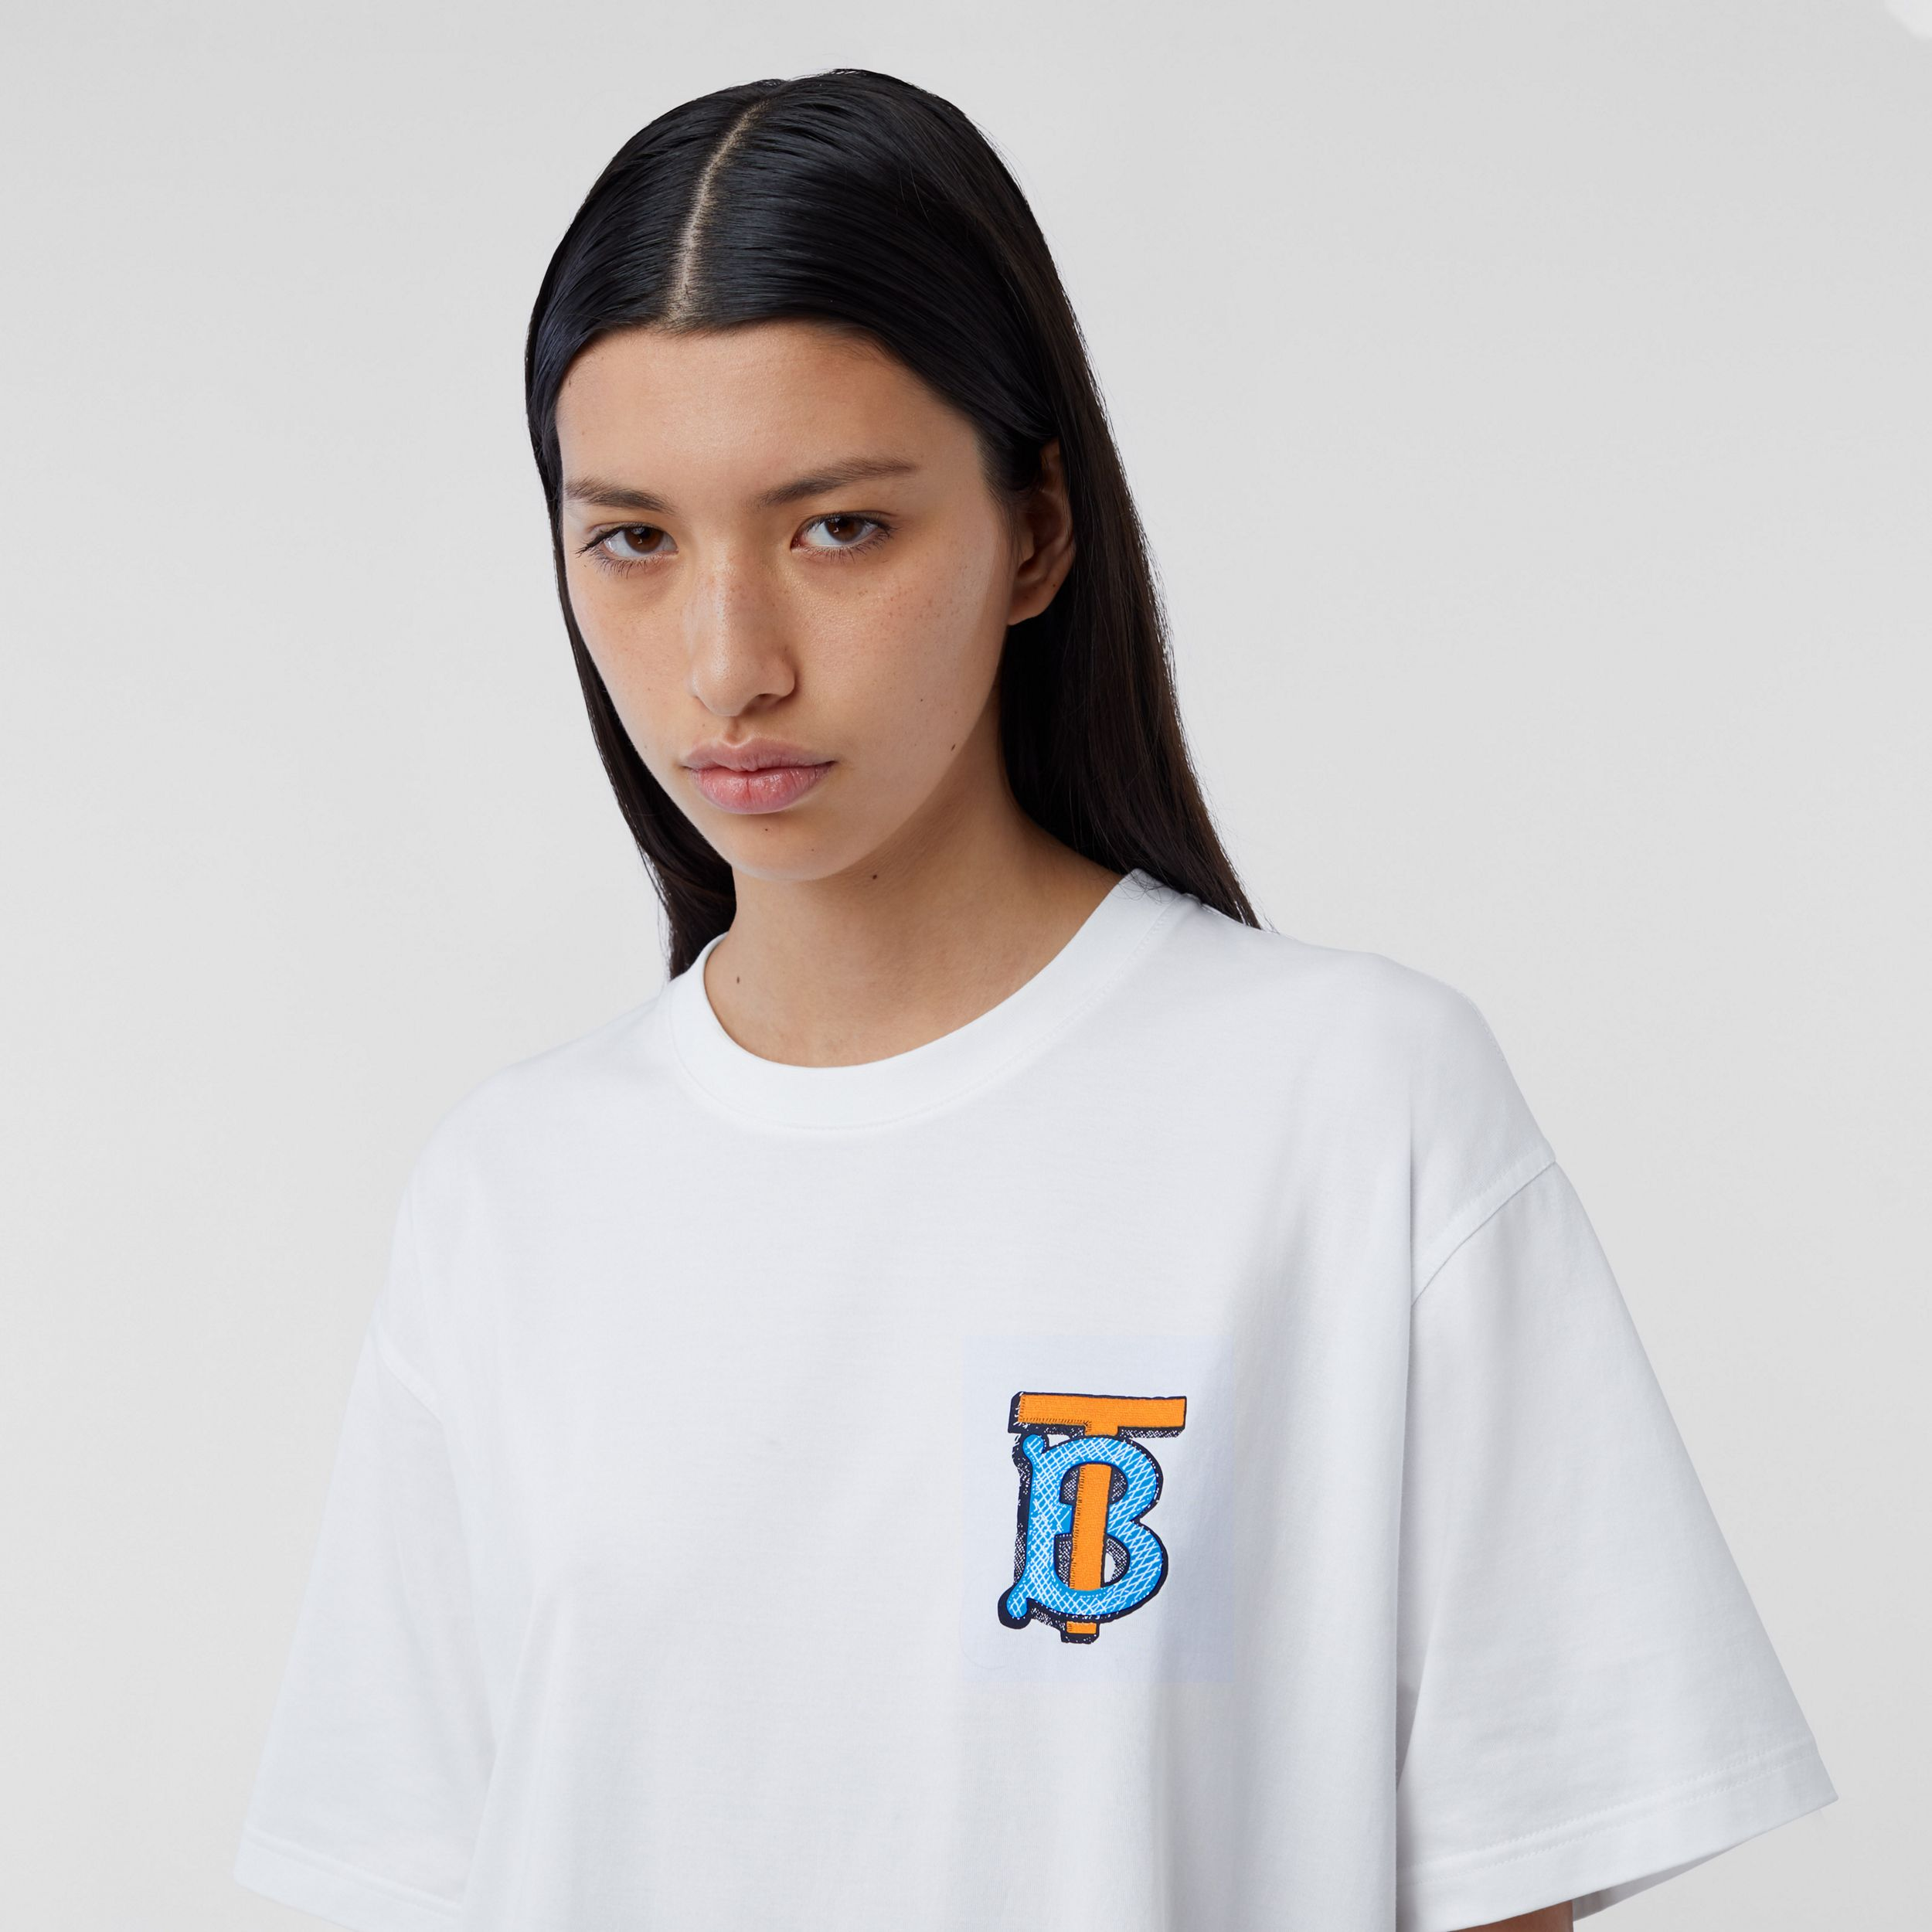 Monogram Motif Cotton T-shirt – Unisex in White | Burberry - 2